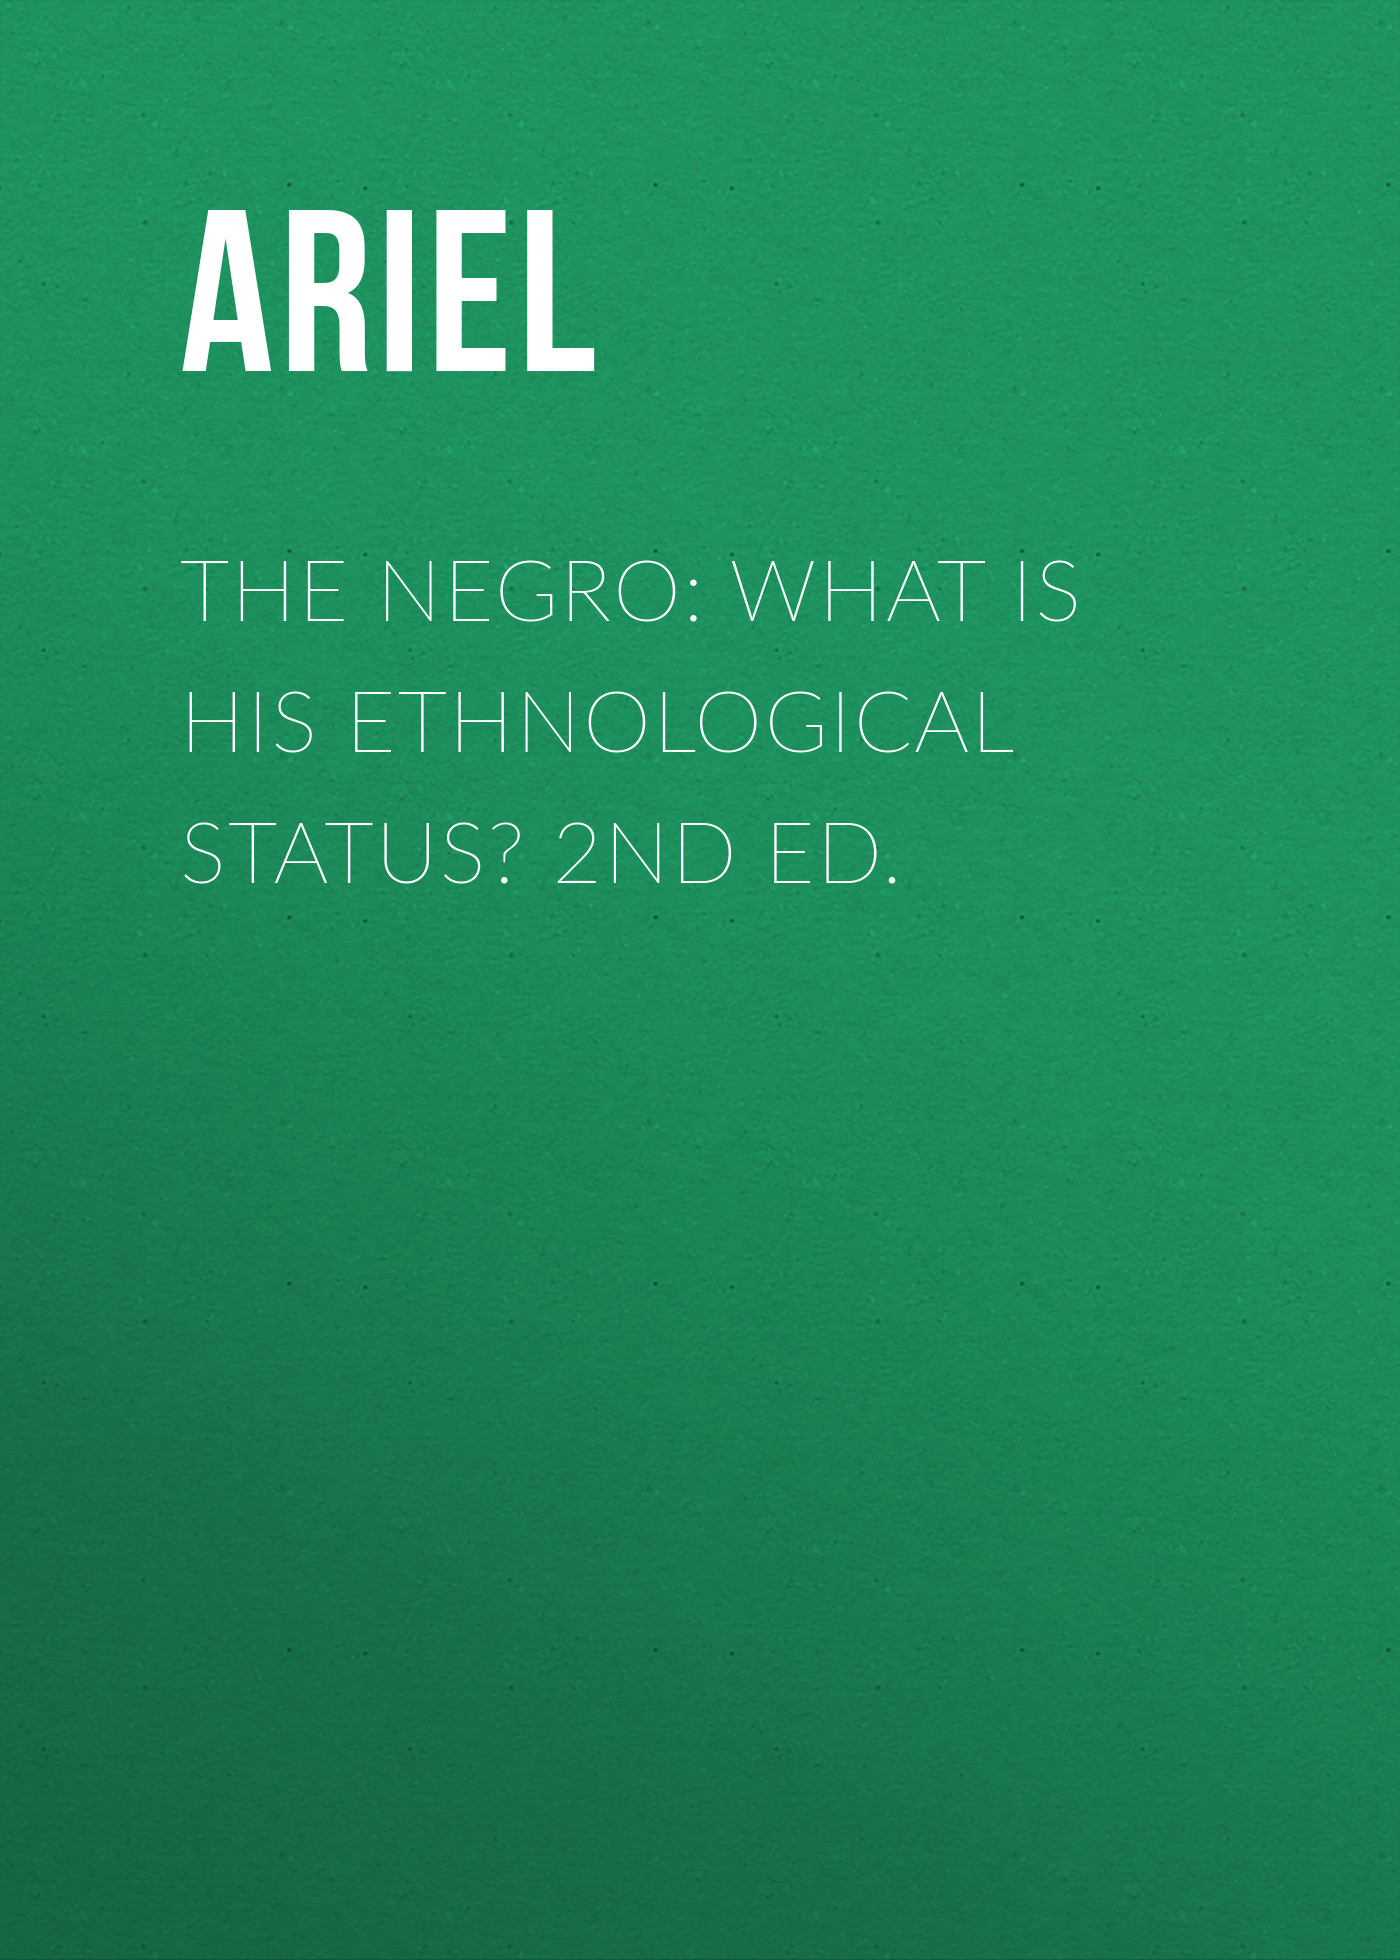 Ariel The Negro: What is His Ethnological Status? 2nd Ed. ed brubaker marc silvestri x men messiah complex 1 2nd print